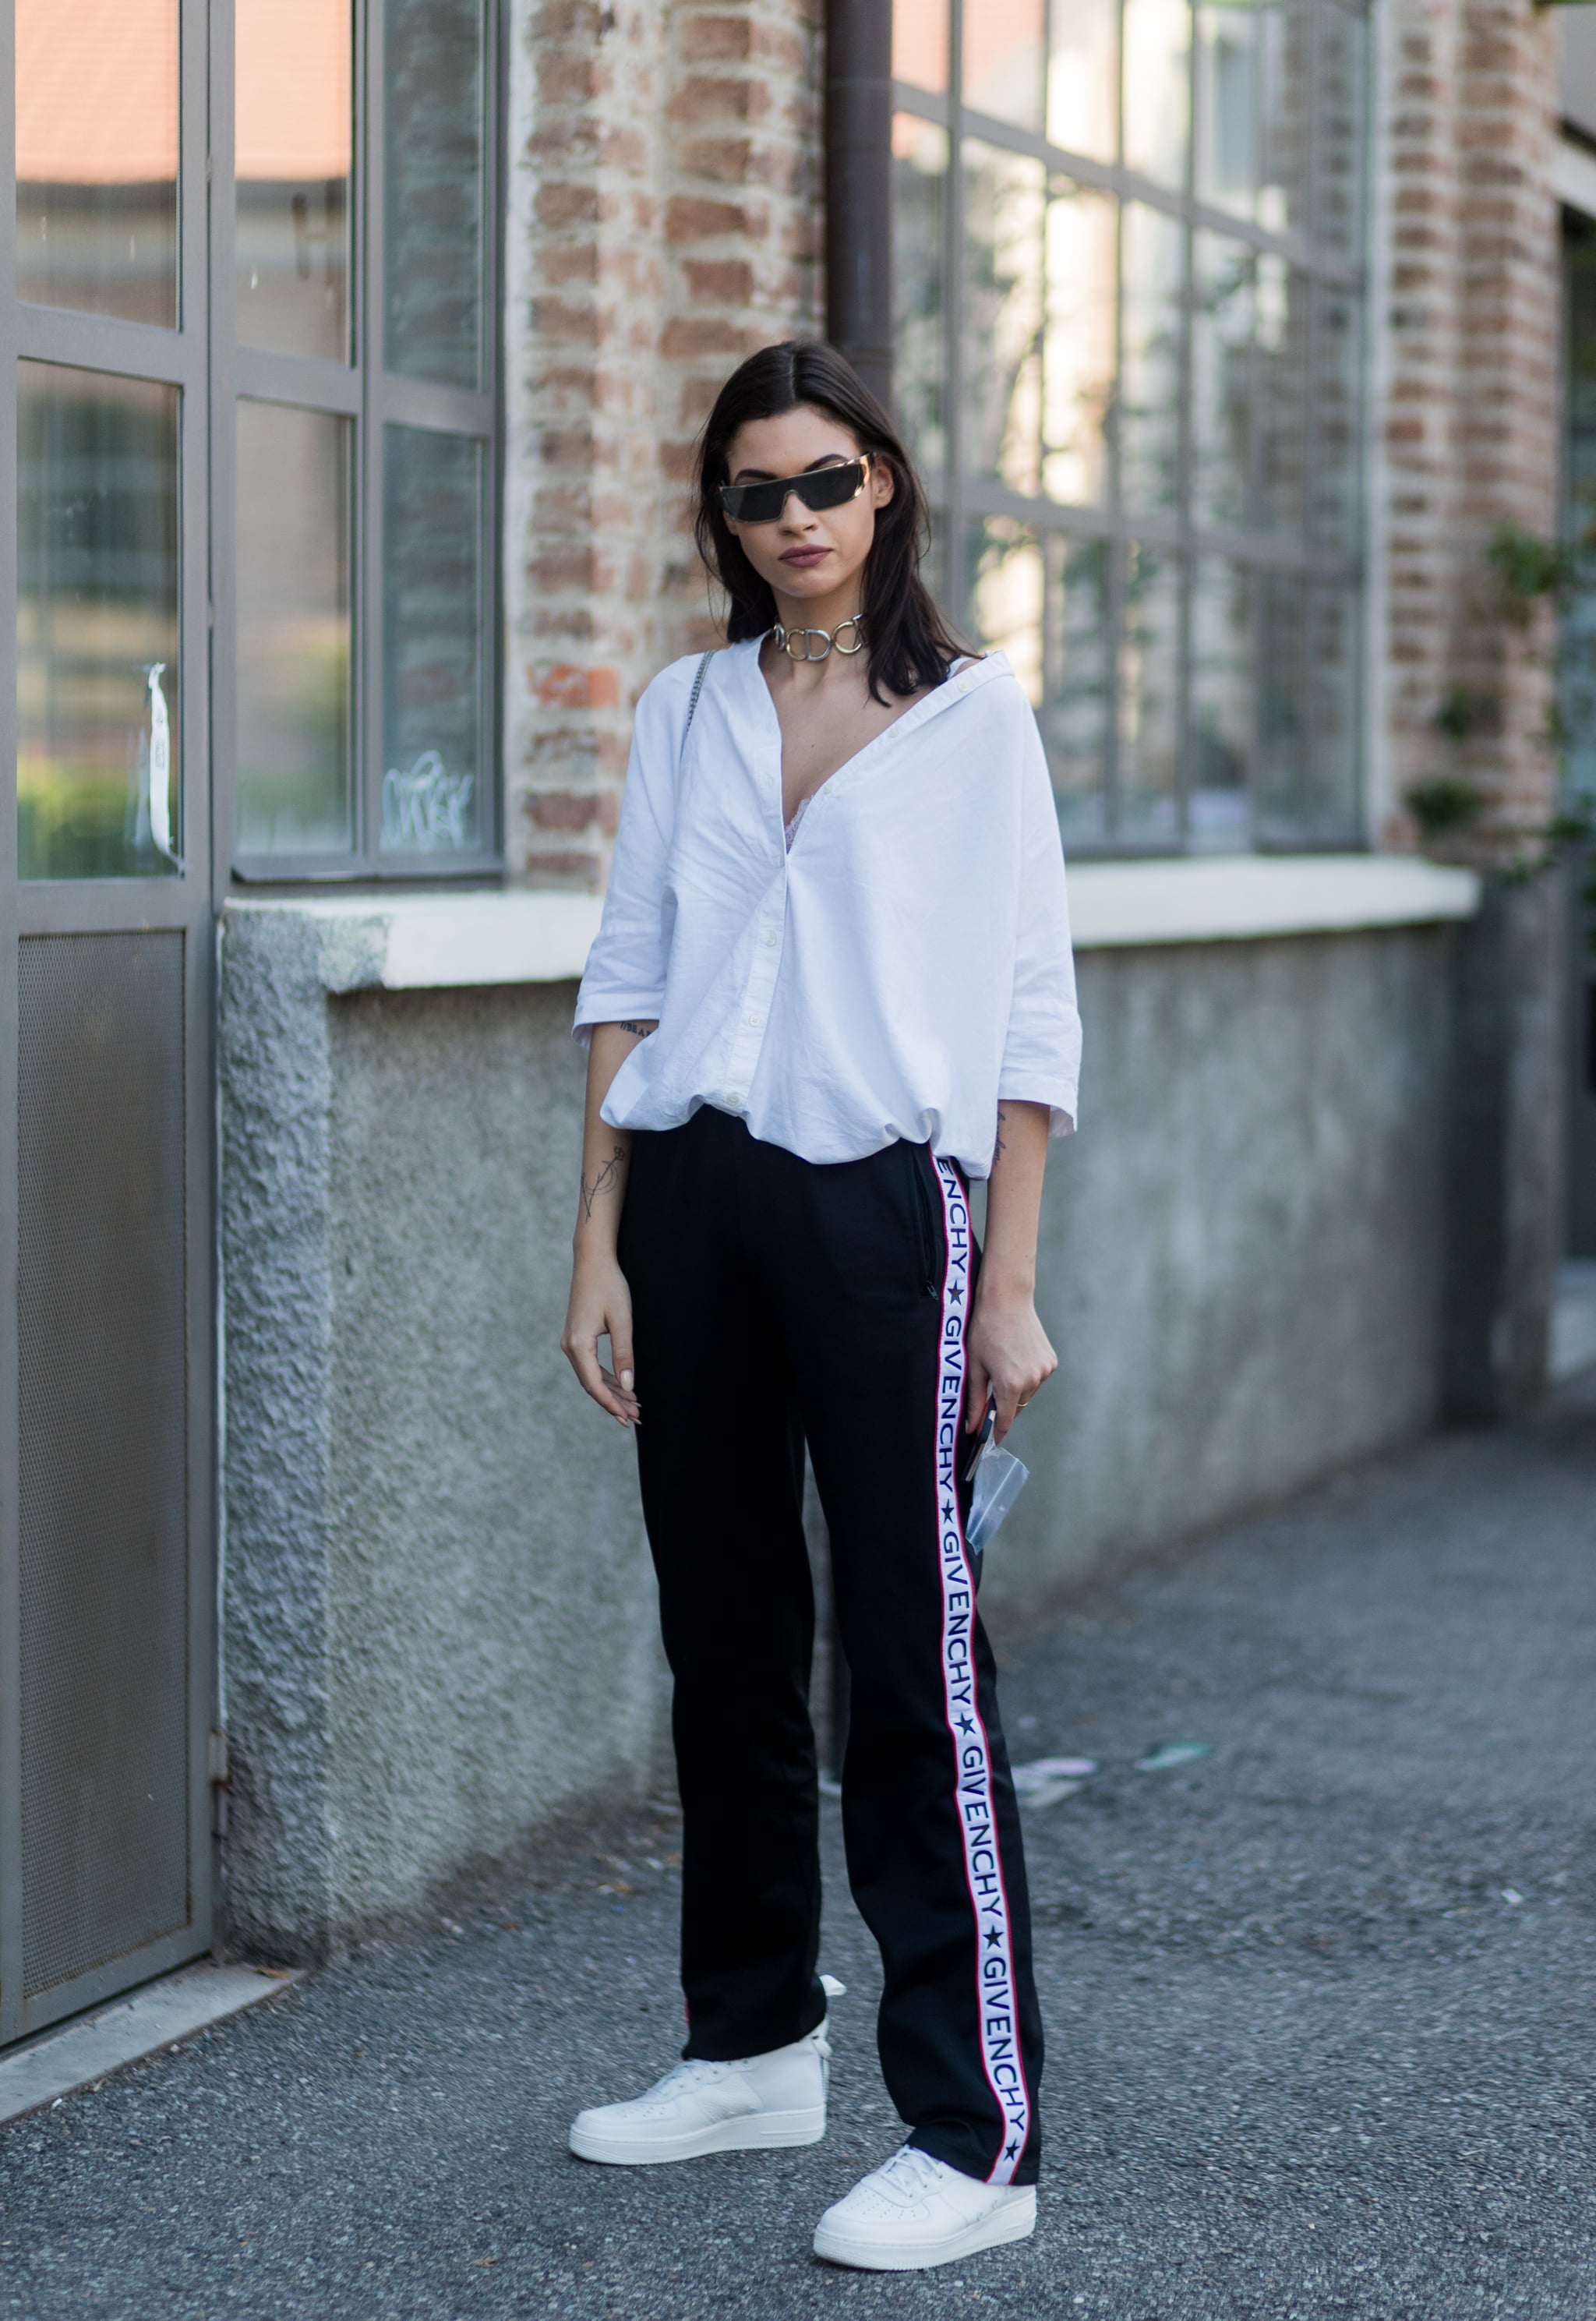 huge sale arrives official store Wear Your Sweatpants With a Chic White Blouse and Futuristic ...